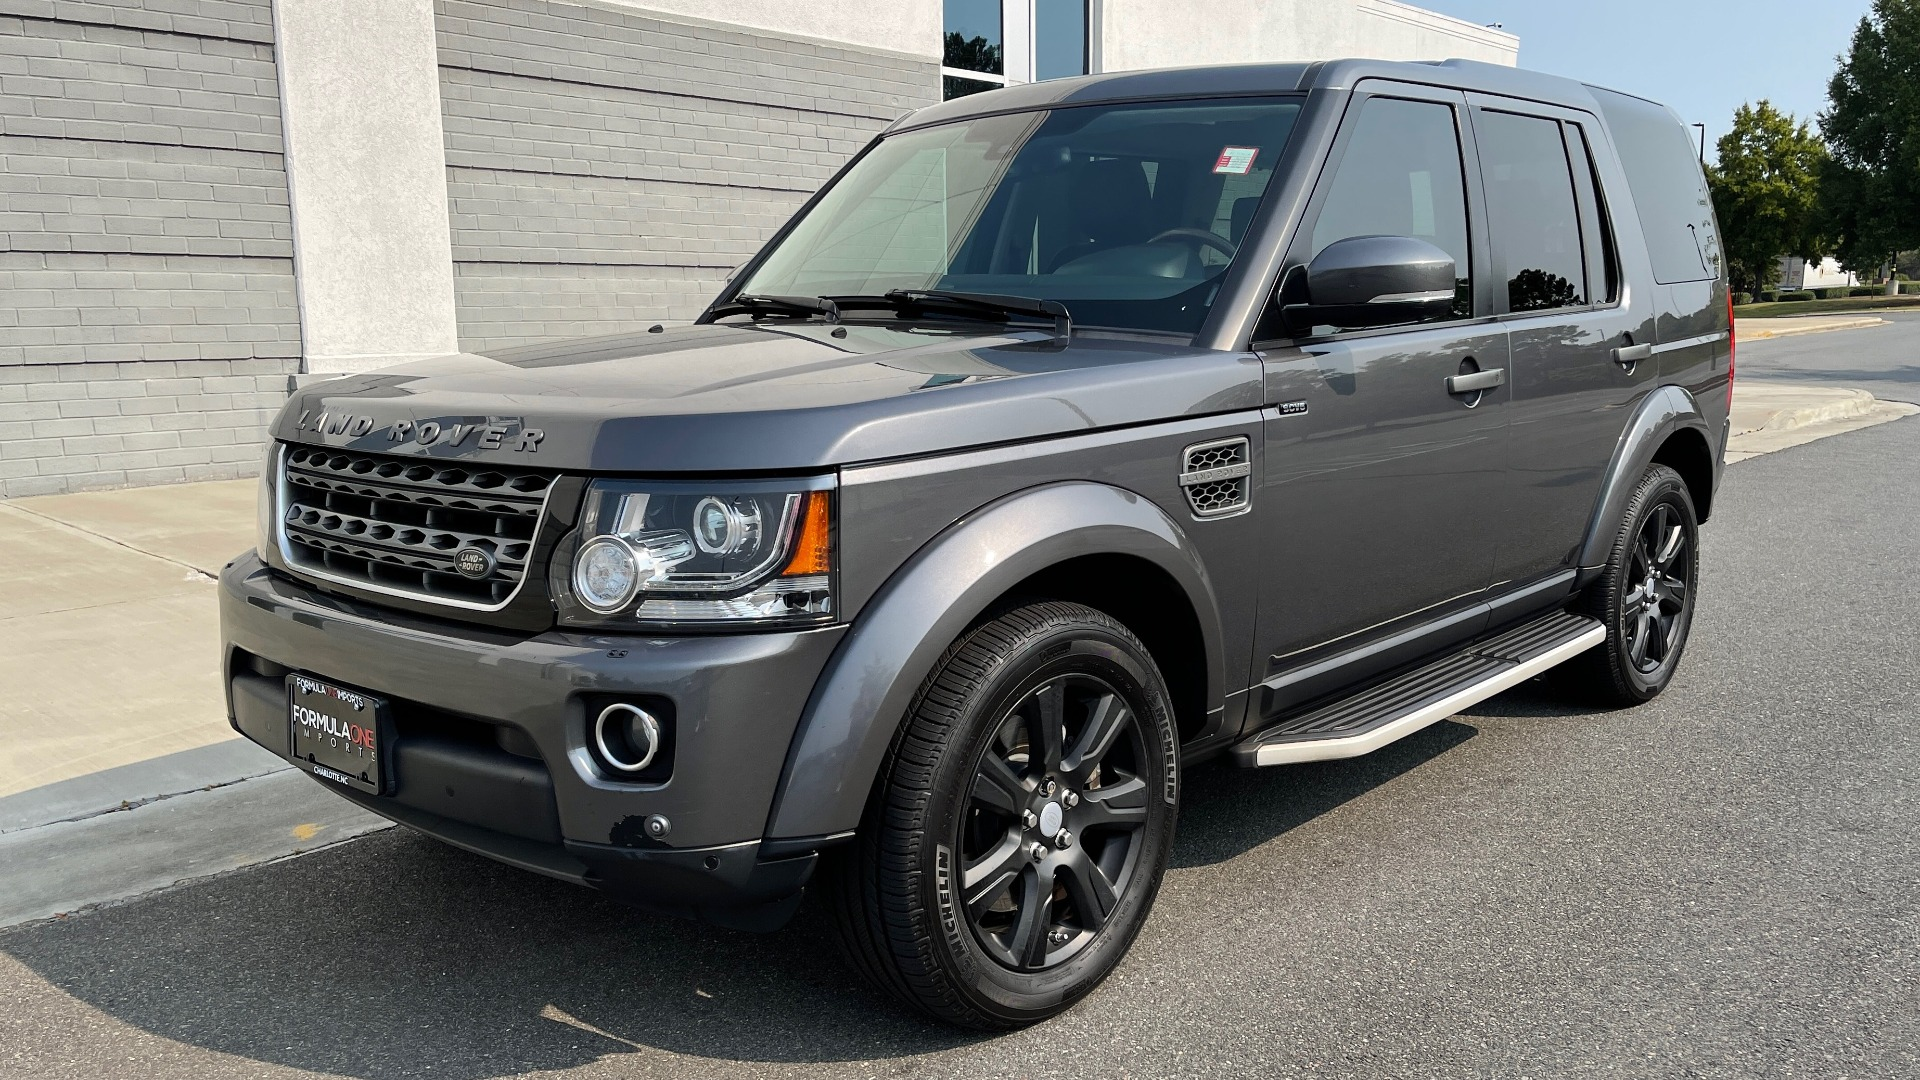 Used 2016 Land Rover LR4 HSE / NAV / SUNROOF / 3-ROW / MERIDIAN SOUND SYS / REARVIEW for sale $30,995 at Formula Imports in Charlotte NC 28227 3